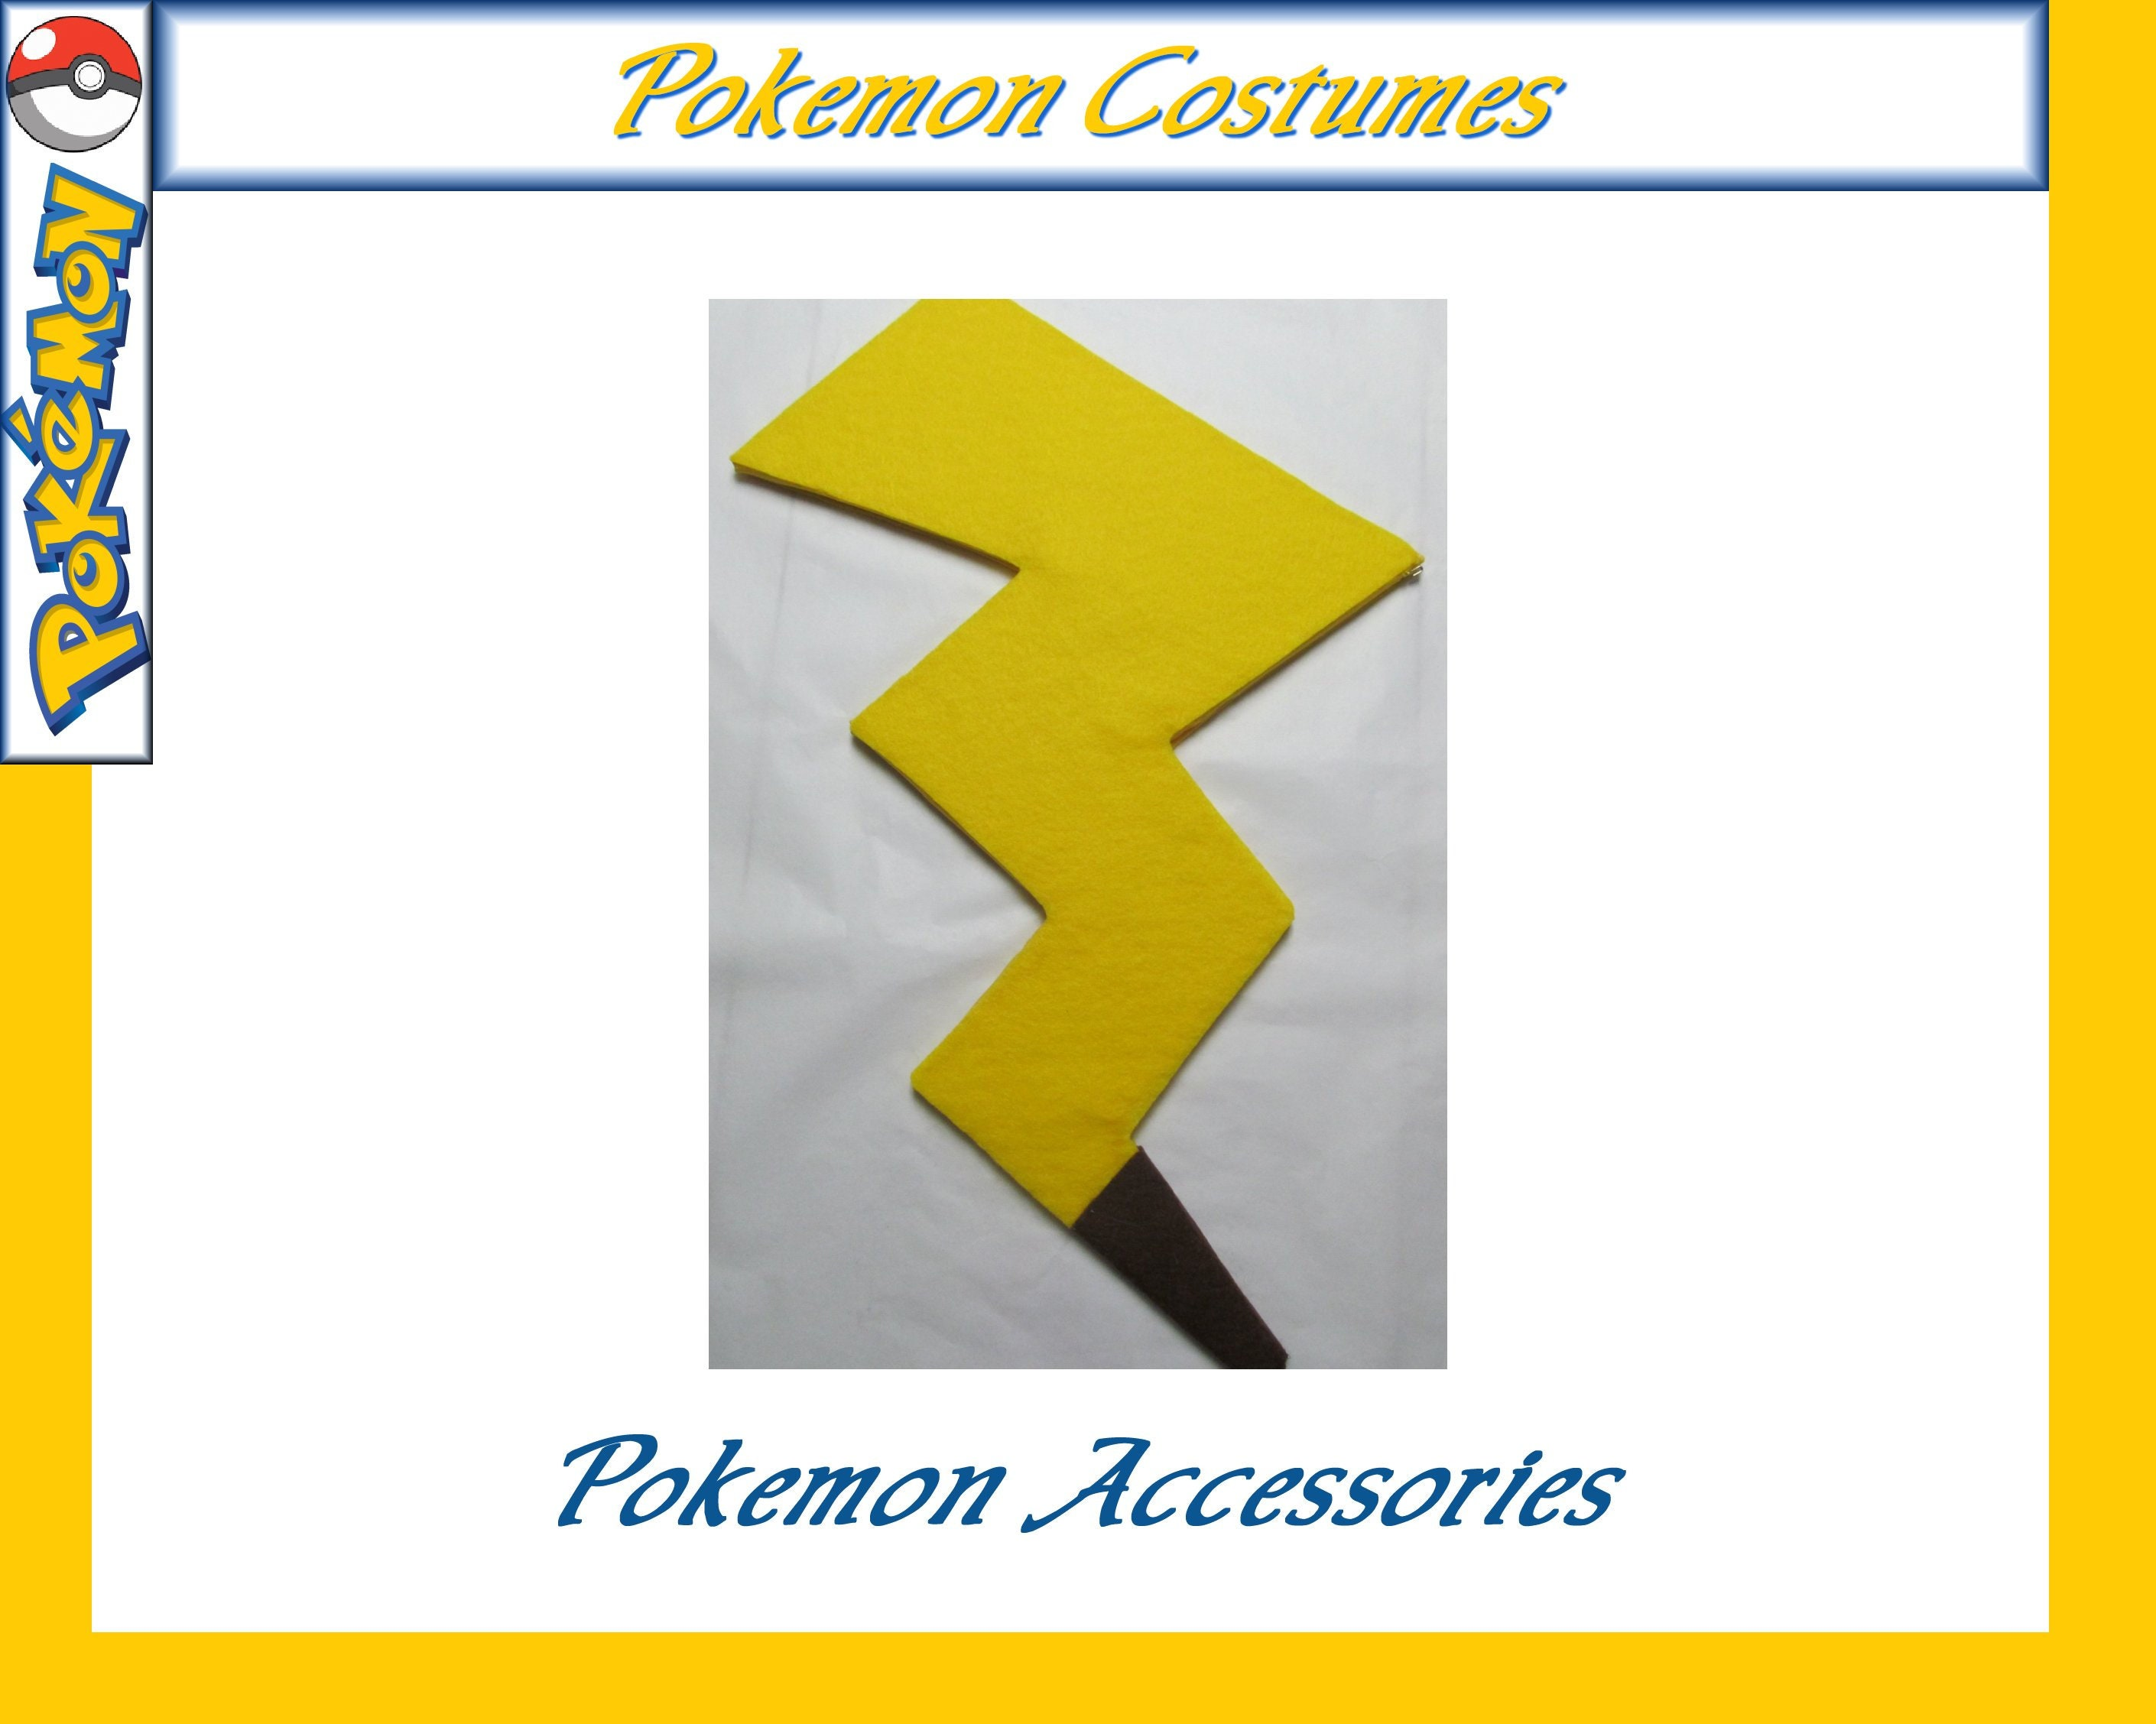 Pokemon Pikachu Tail Cosplay Costume Yellow Electric Mouse Etsy